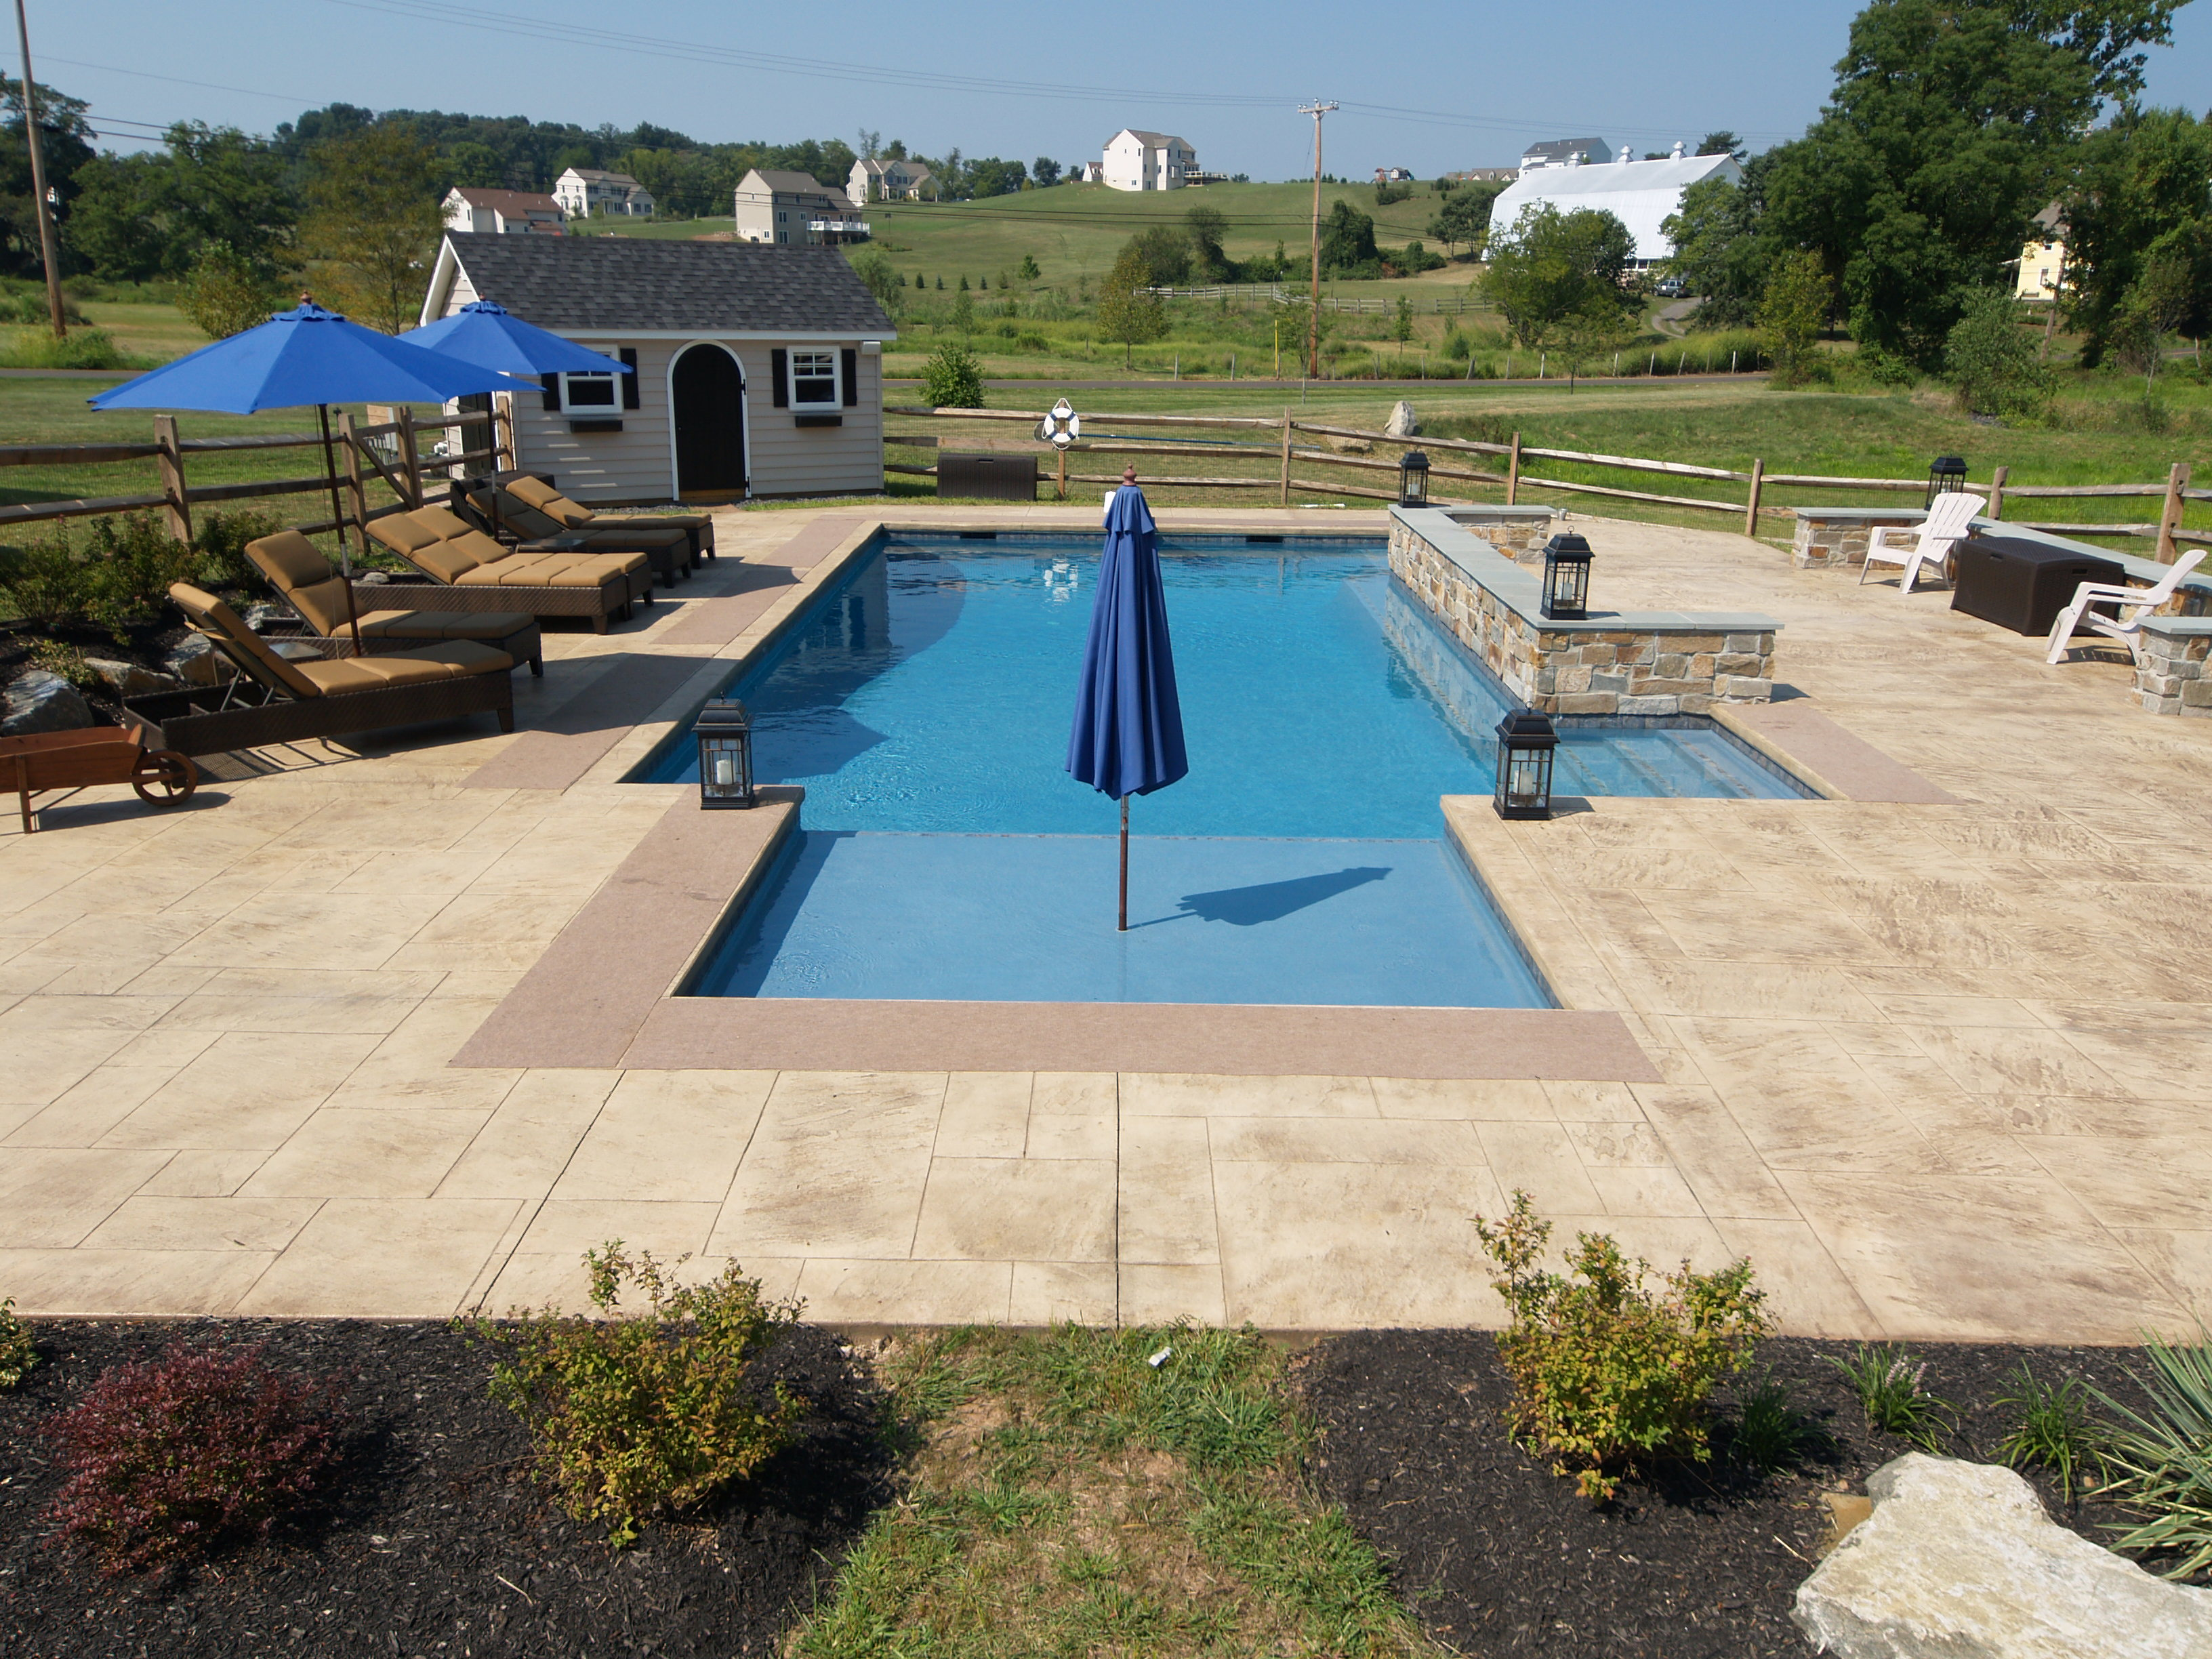 Gunite Swimming Pool Designs Cool Gunite Pools & Pool Builders  Swimming Pool Design  Fronheiser Pools Design Ideas